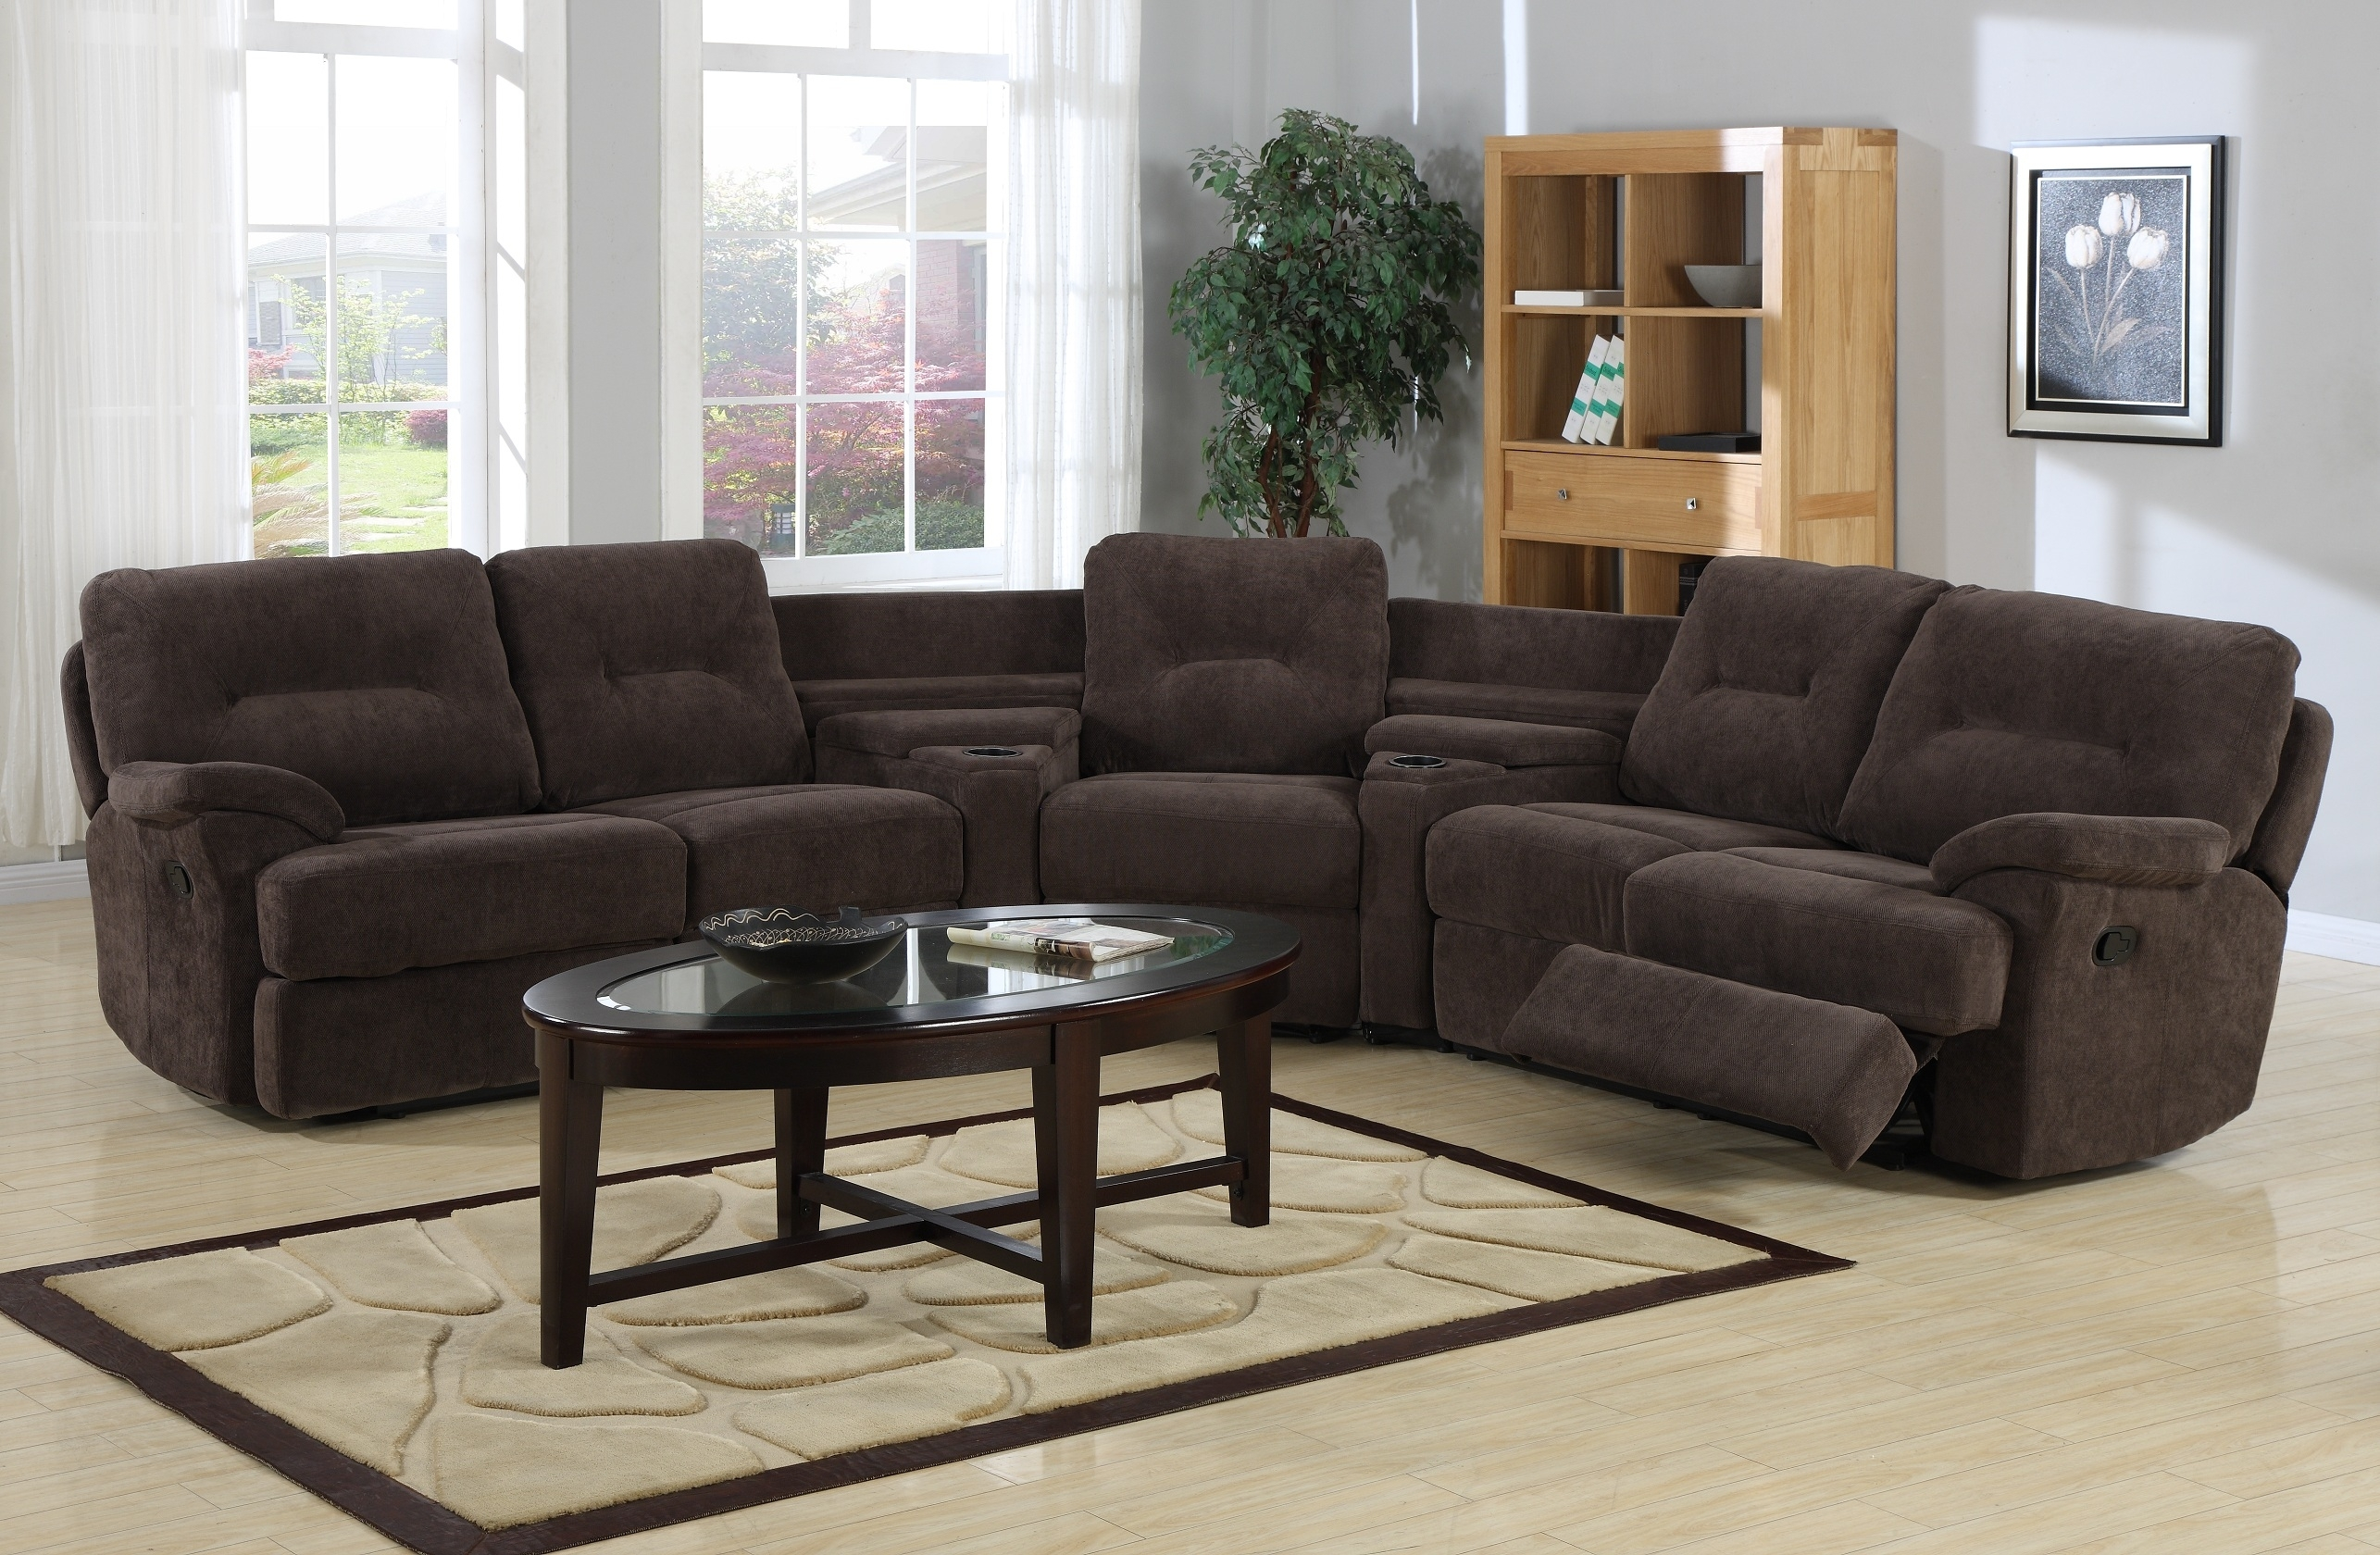 10 Best Collection Of Portland Oregon Sectional Sofas